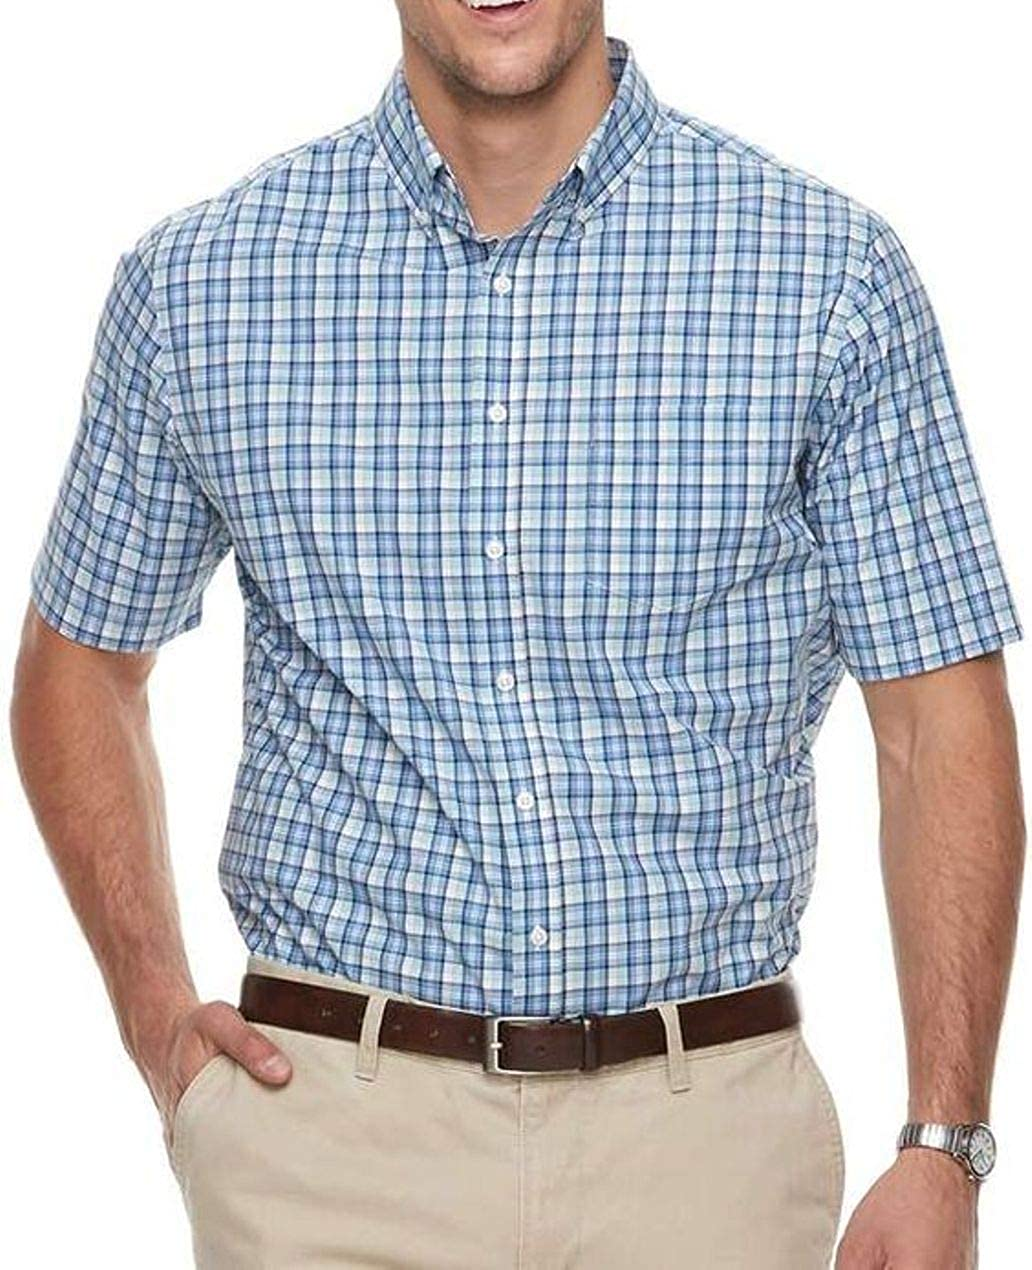 Croft & Barrow Mens Classic Fit Short Sleeve Button-Down Casual Shirt Sizes